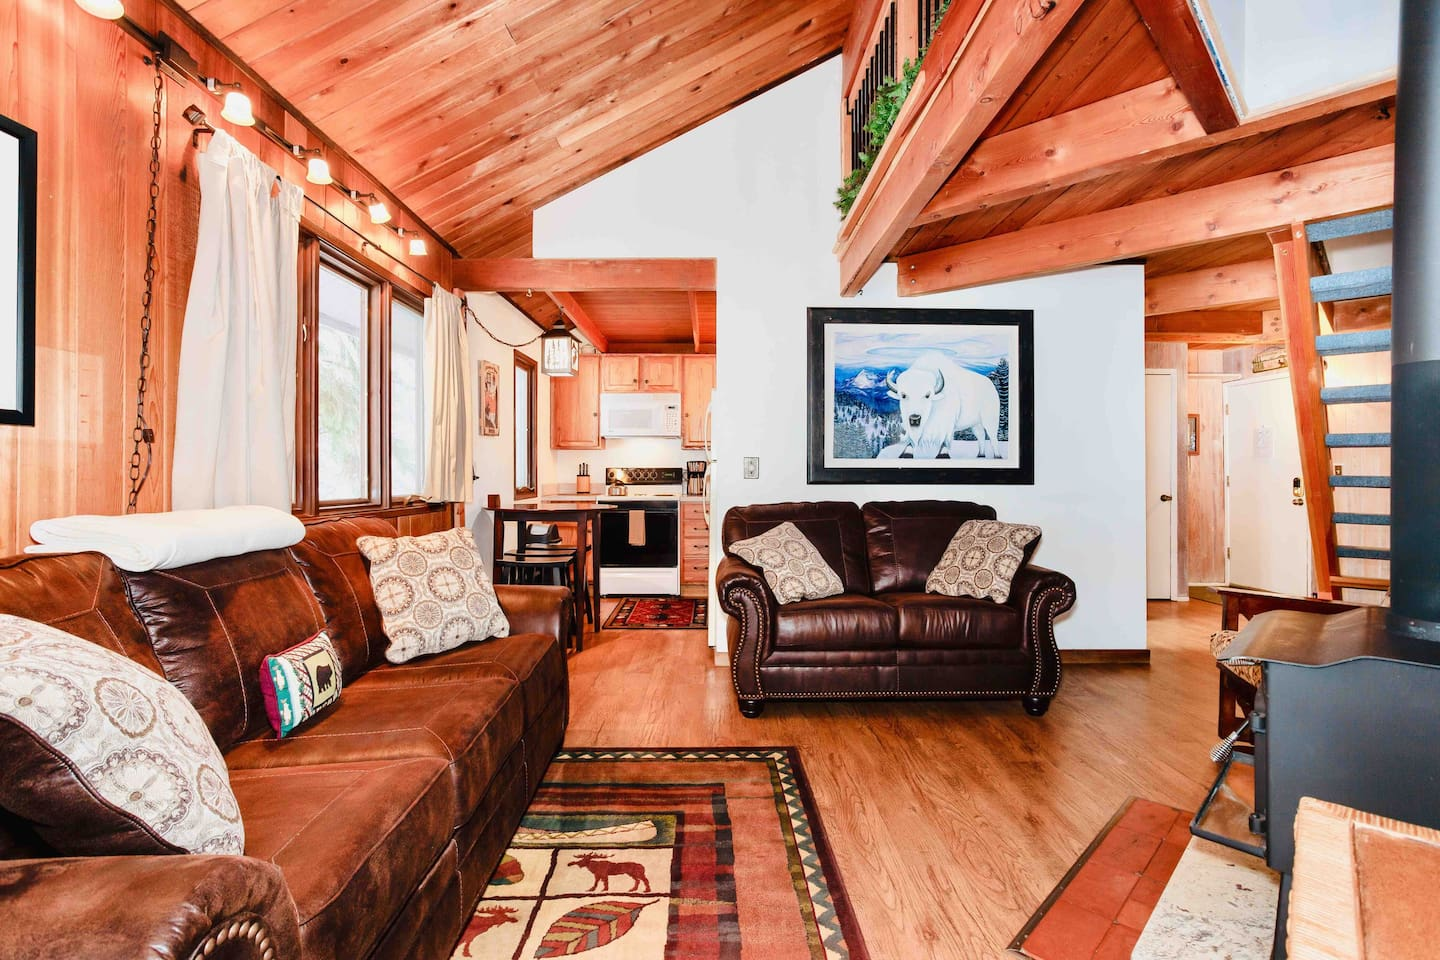 Our loft condo up on the mountain is a perfect getaway for a couples retreat or family vacation! Come stay with us!